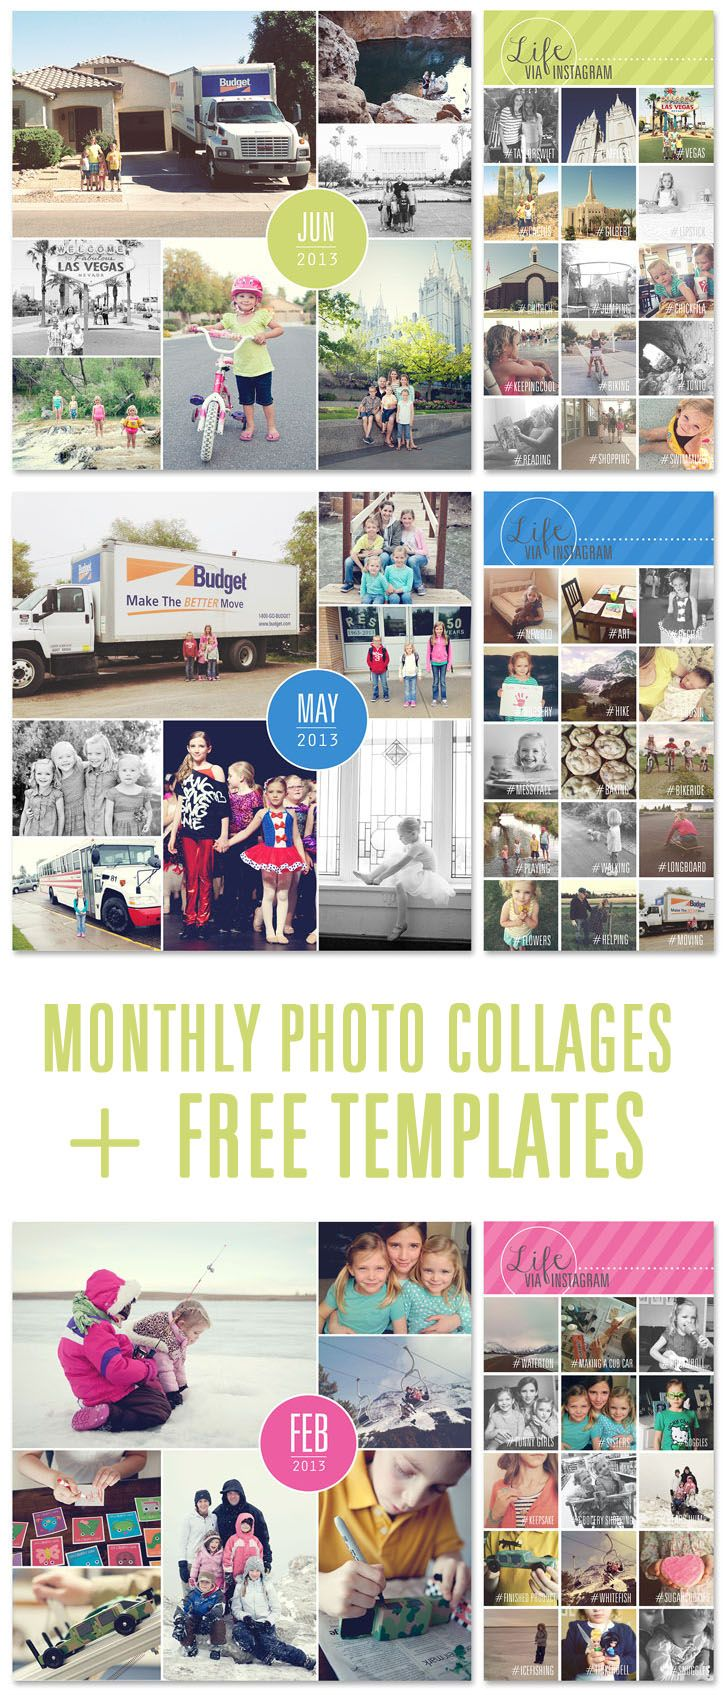 Simple memory keeping using photo collages. Free templates included.